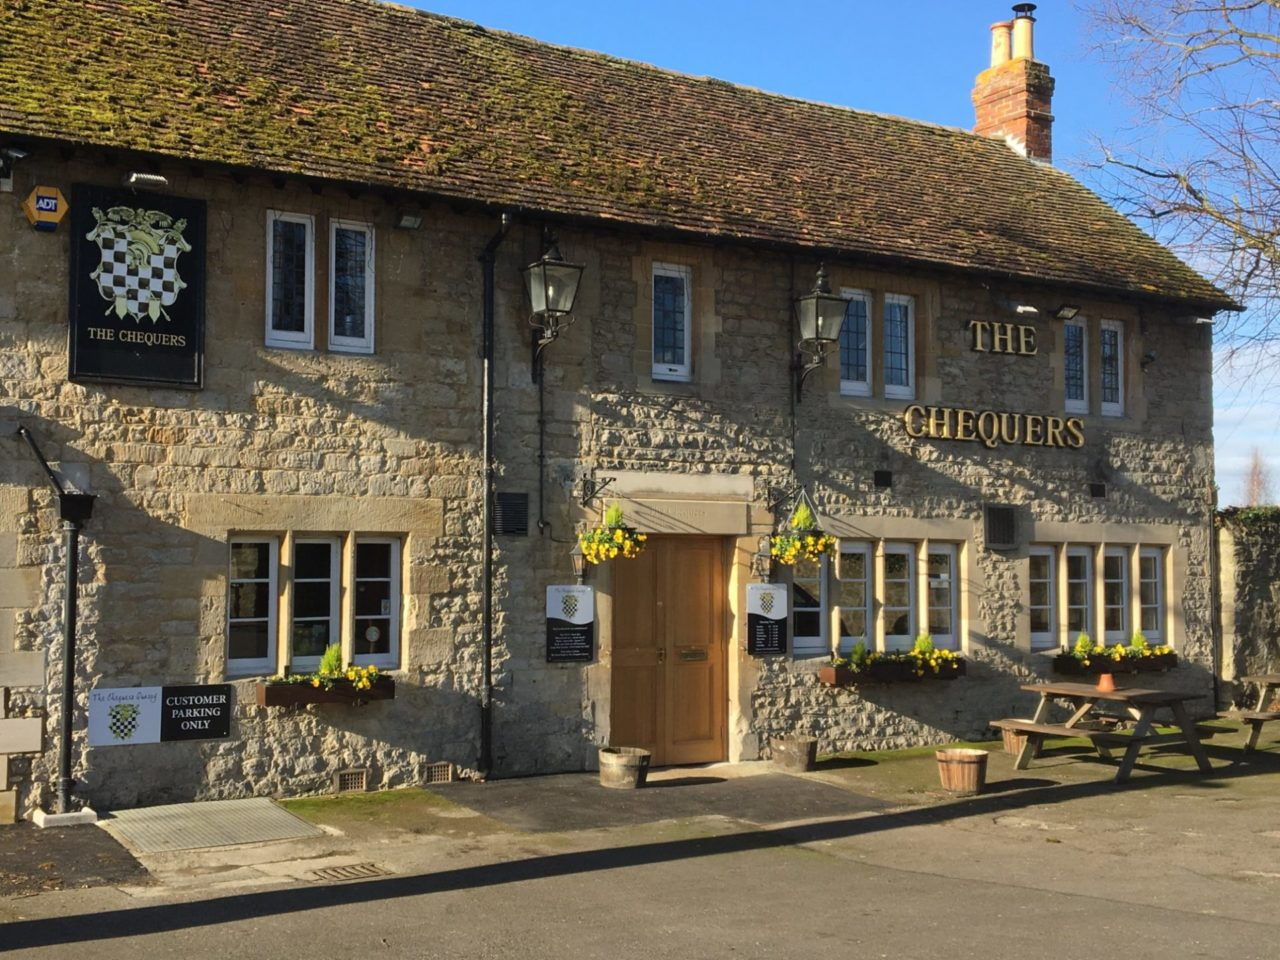 The Chequers, Quarry